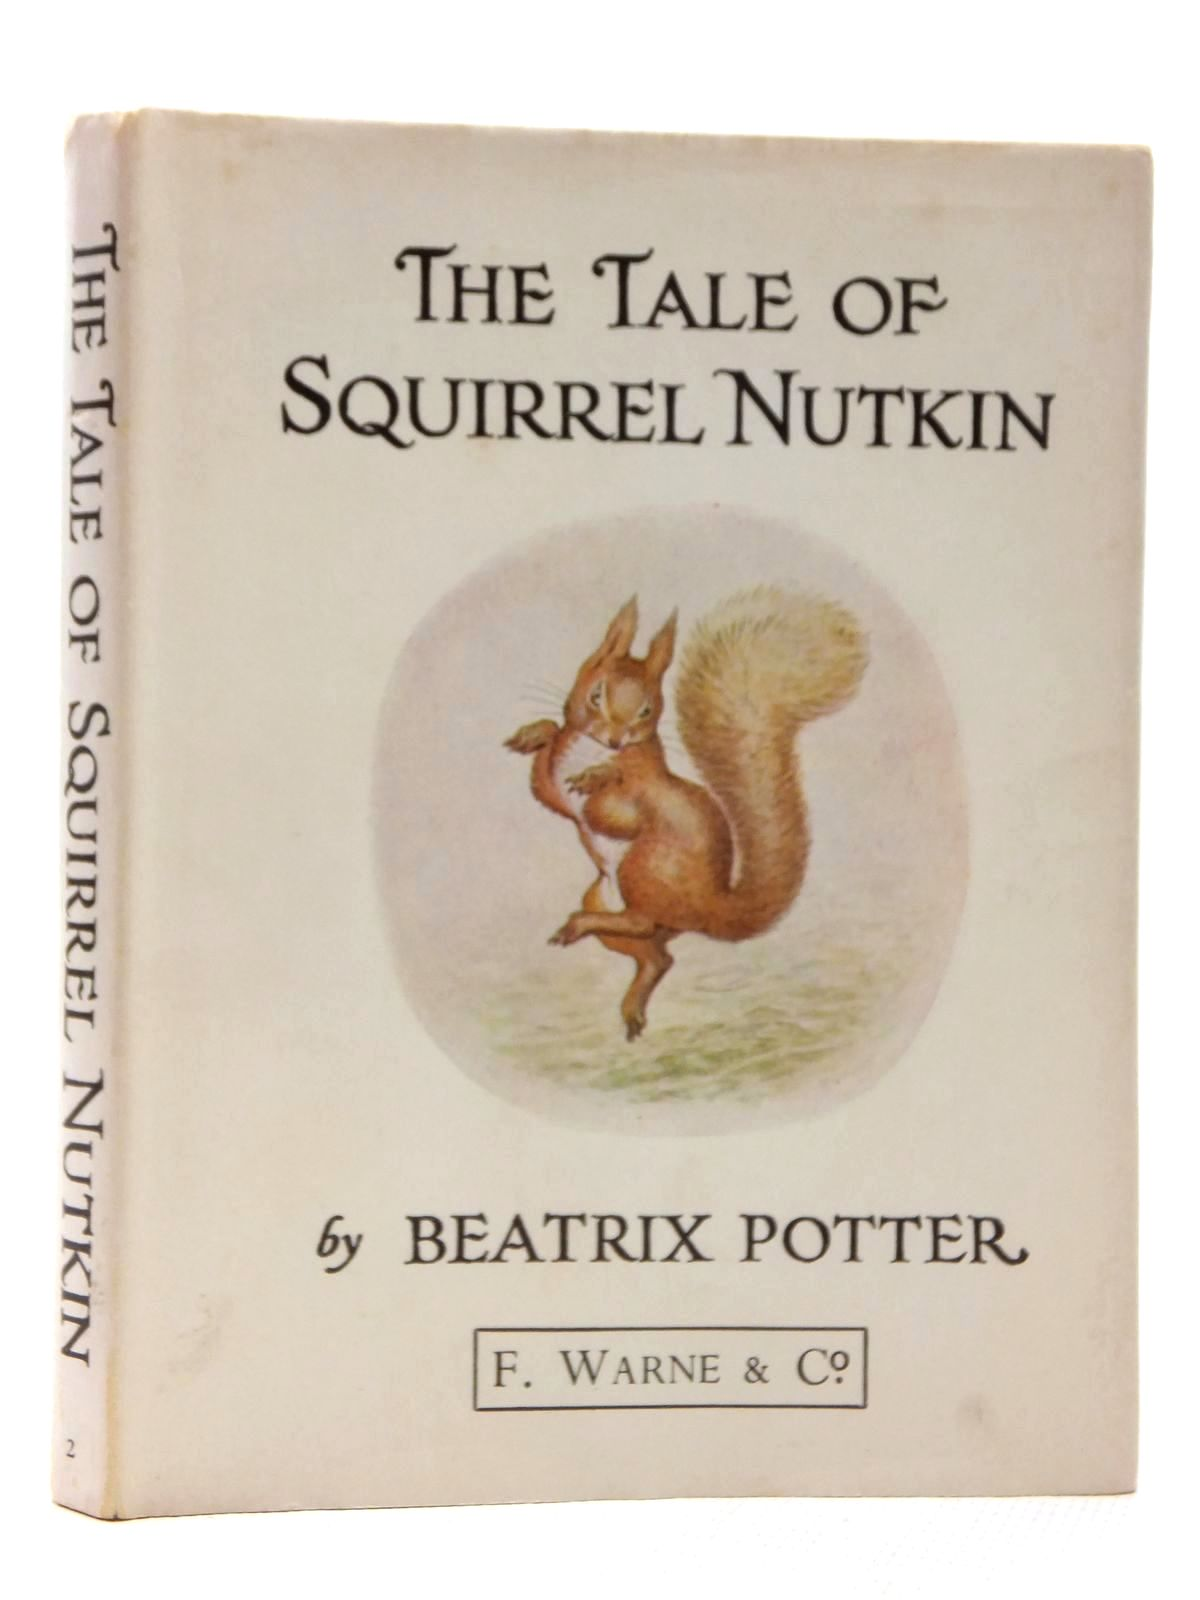 Photo of THE TALE OF SQUIRREL NUTKIN written by Potter, Beatrix illustrated by Potter, Beatrix published by Frederick Warne & Co Ltd. (STOCK CODE: 1317154)  for sale by Stella & Rose's Books